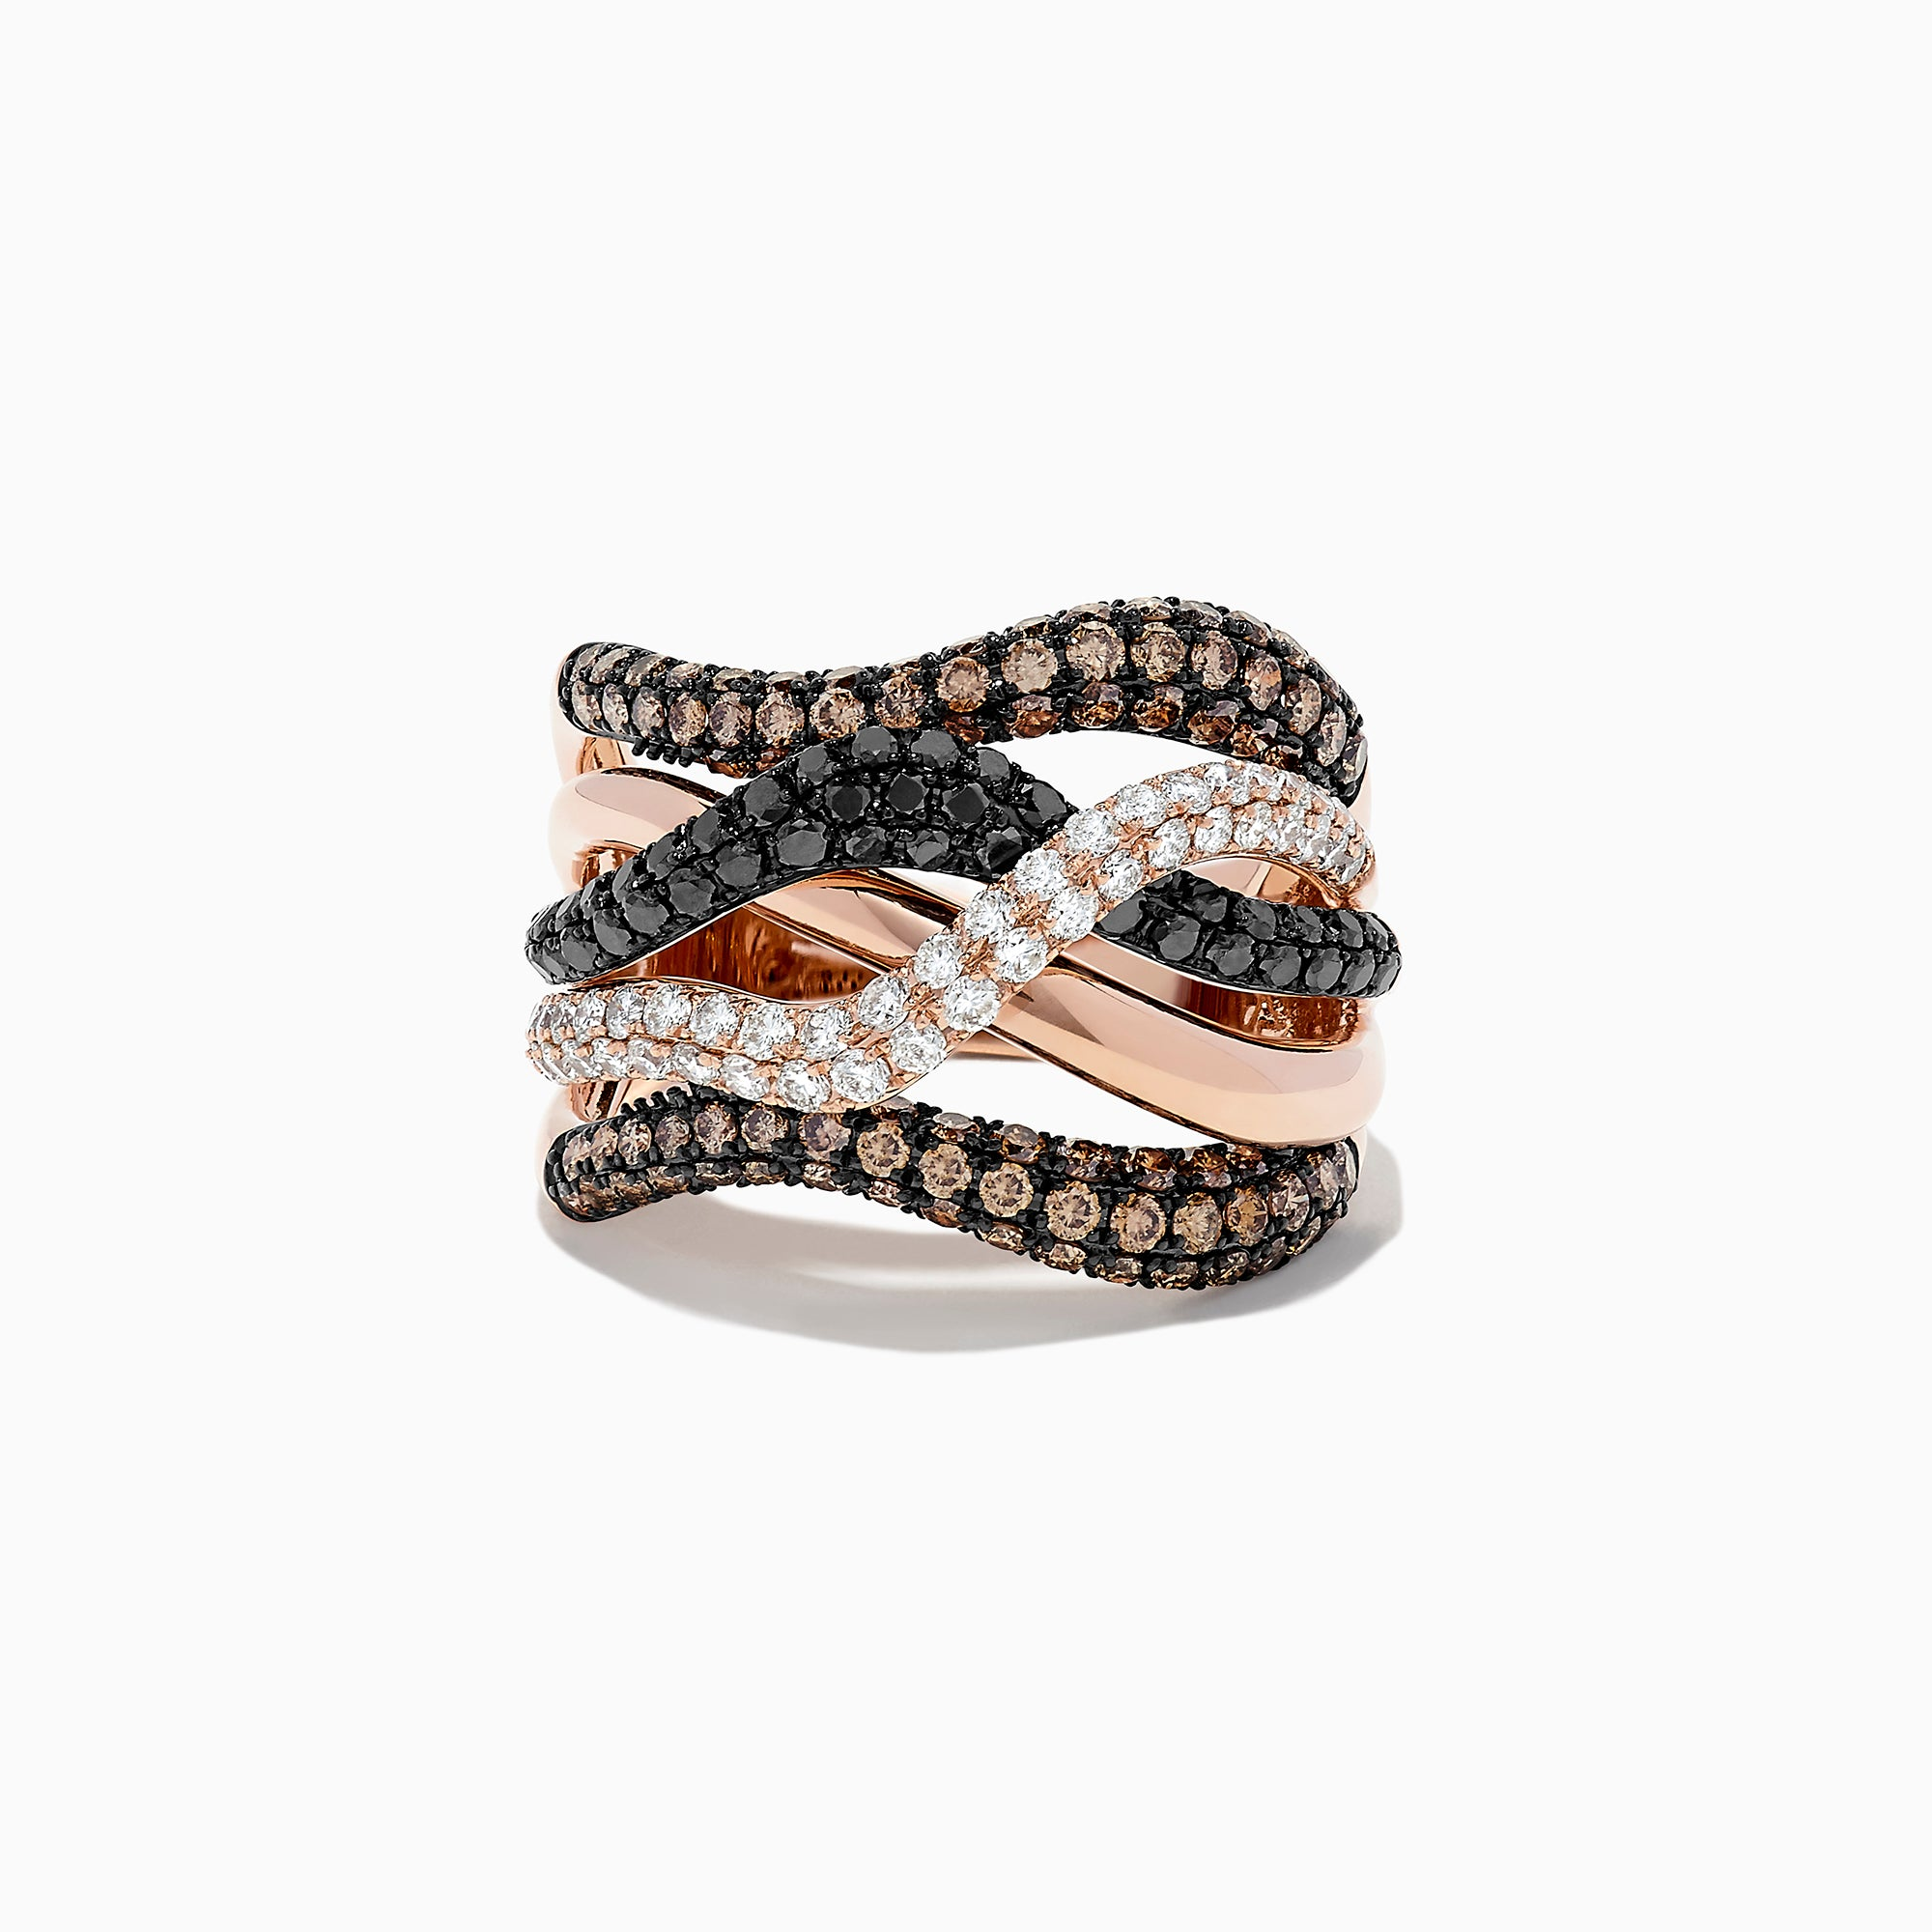 Effy 14K Rose Gold Black, Espresso and White Diamond Ring, 1.97 TCW